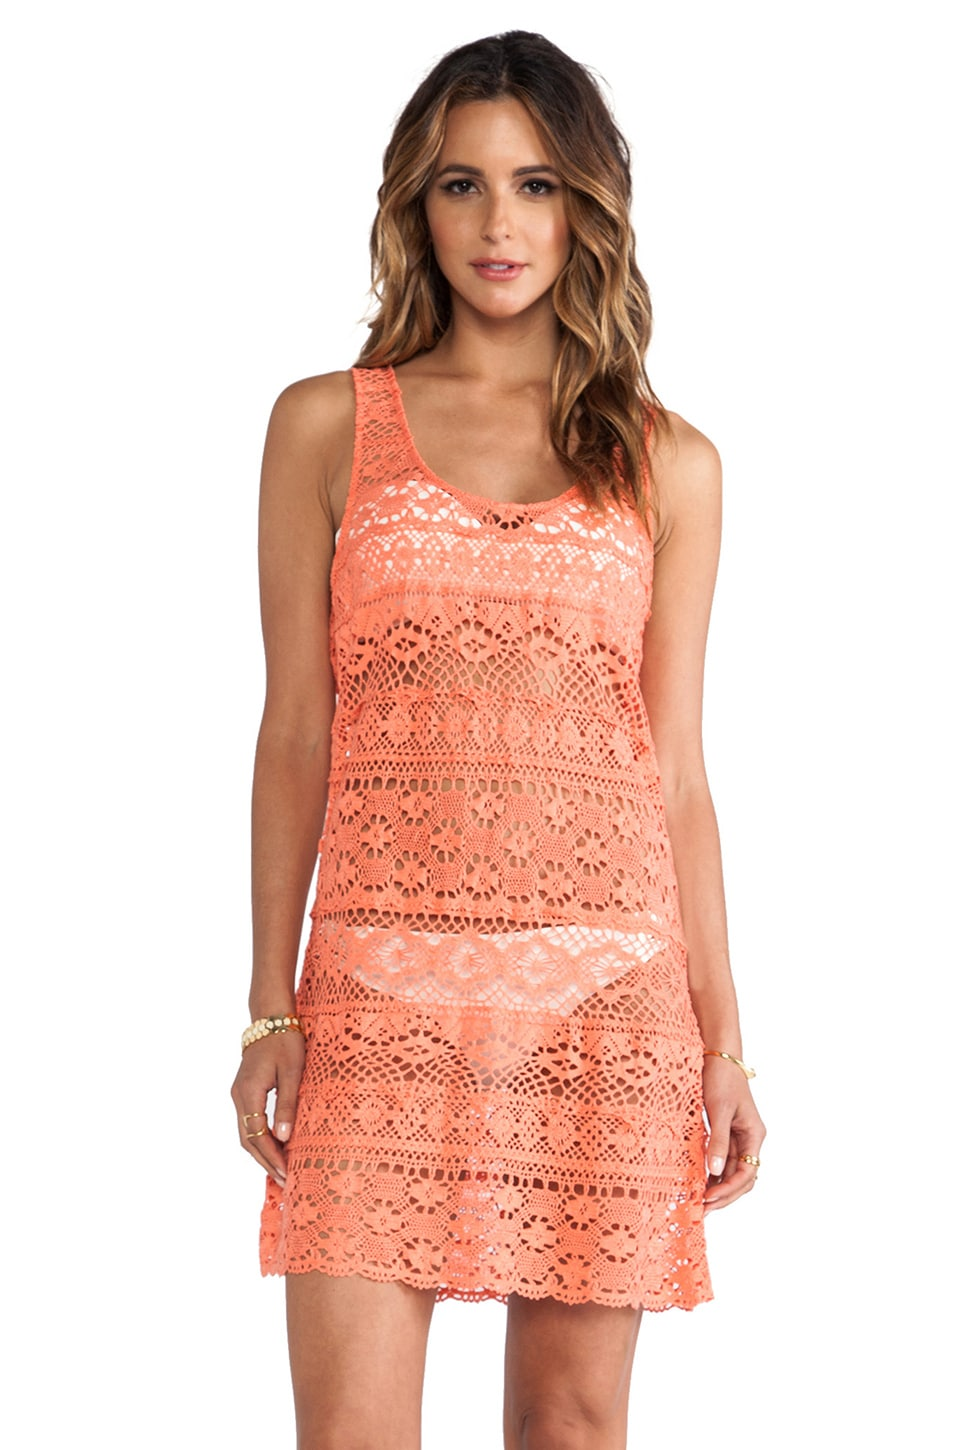 Nanette Lepore Cosmic Crochet Tank Dress Cover Up in Flamingo